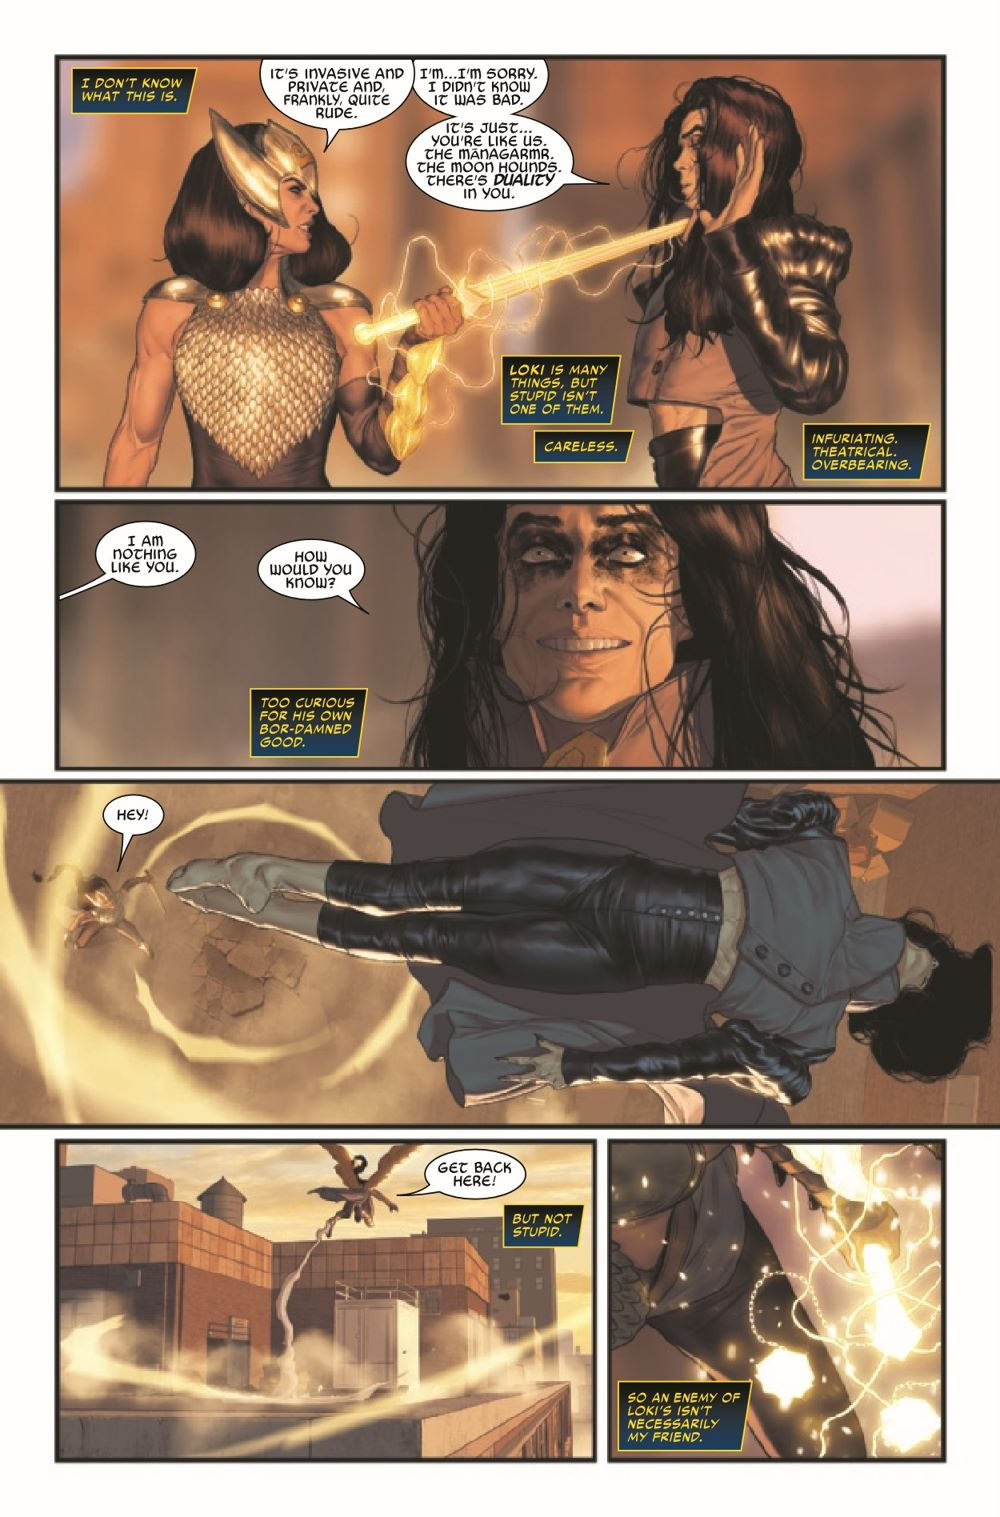 MIGHTYVALKYRIES2021002_Preview-4 ComicList Previews: THE MIGHTY VALKYRIES #2 (OF 5)